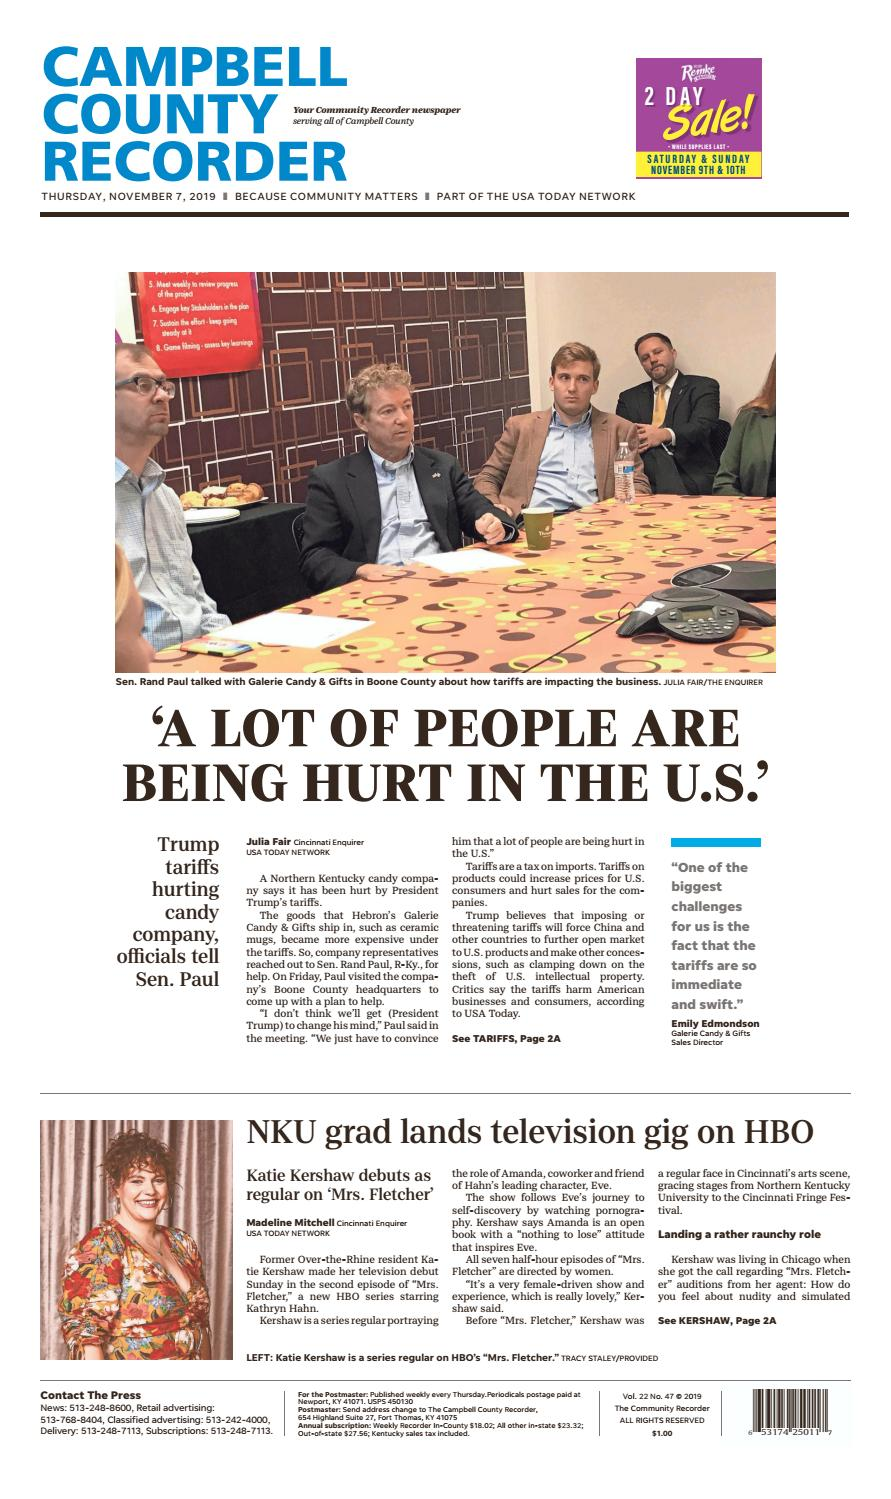 Campbell County Recorder 11 07 19 By Enquirer Media Issuu